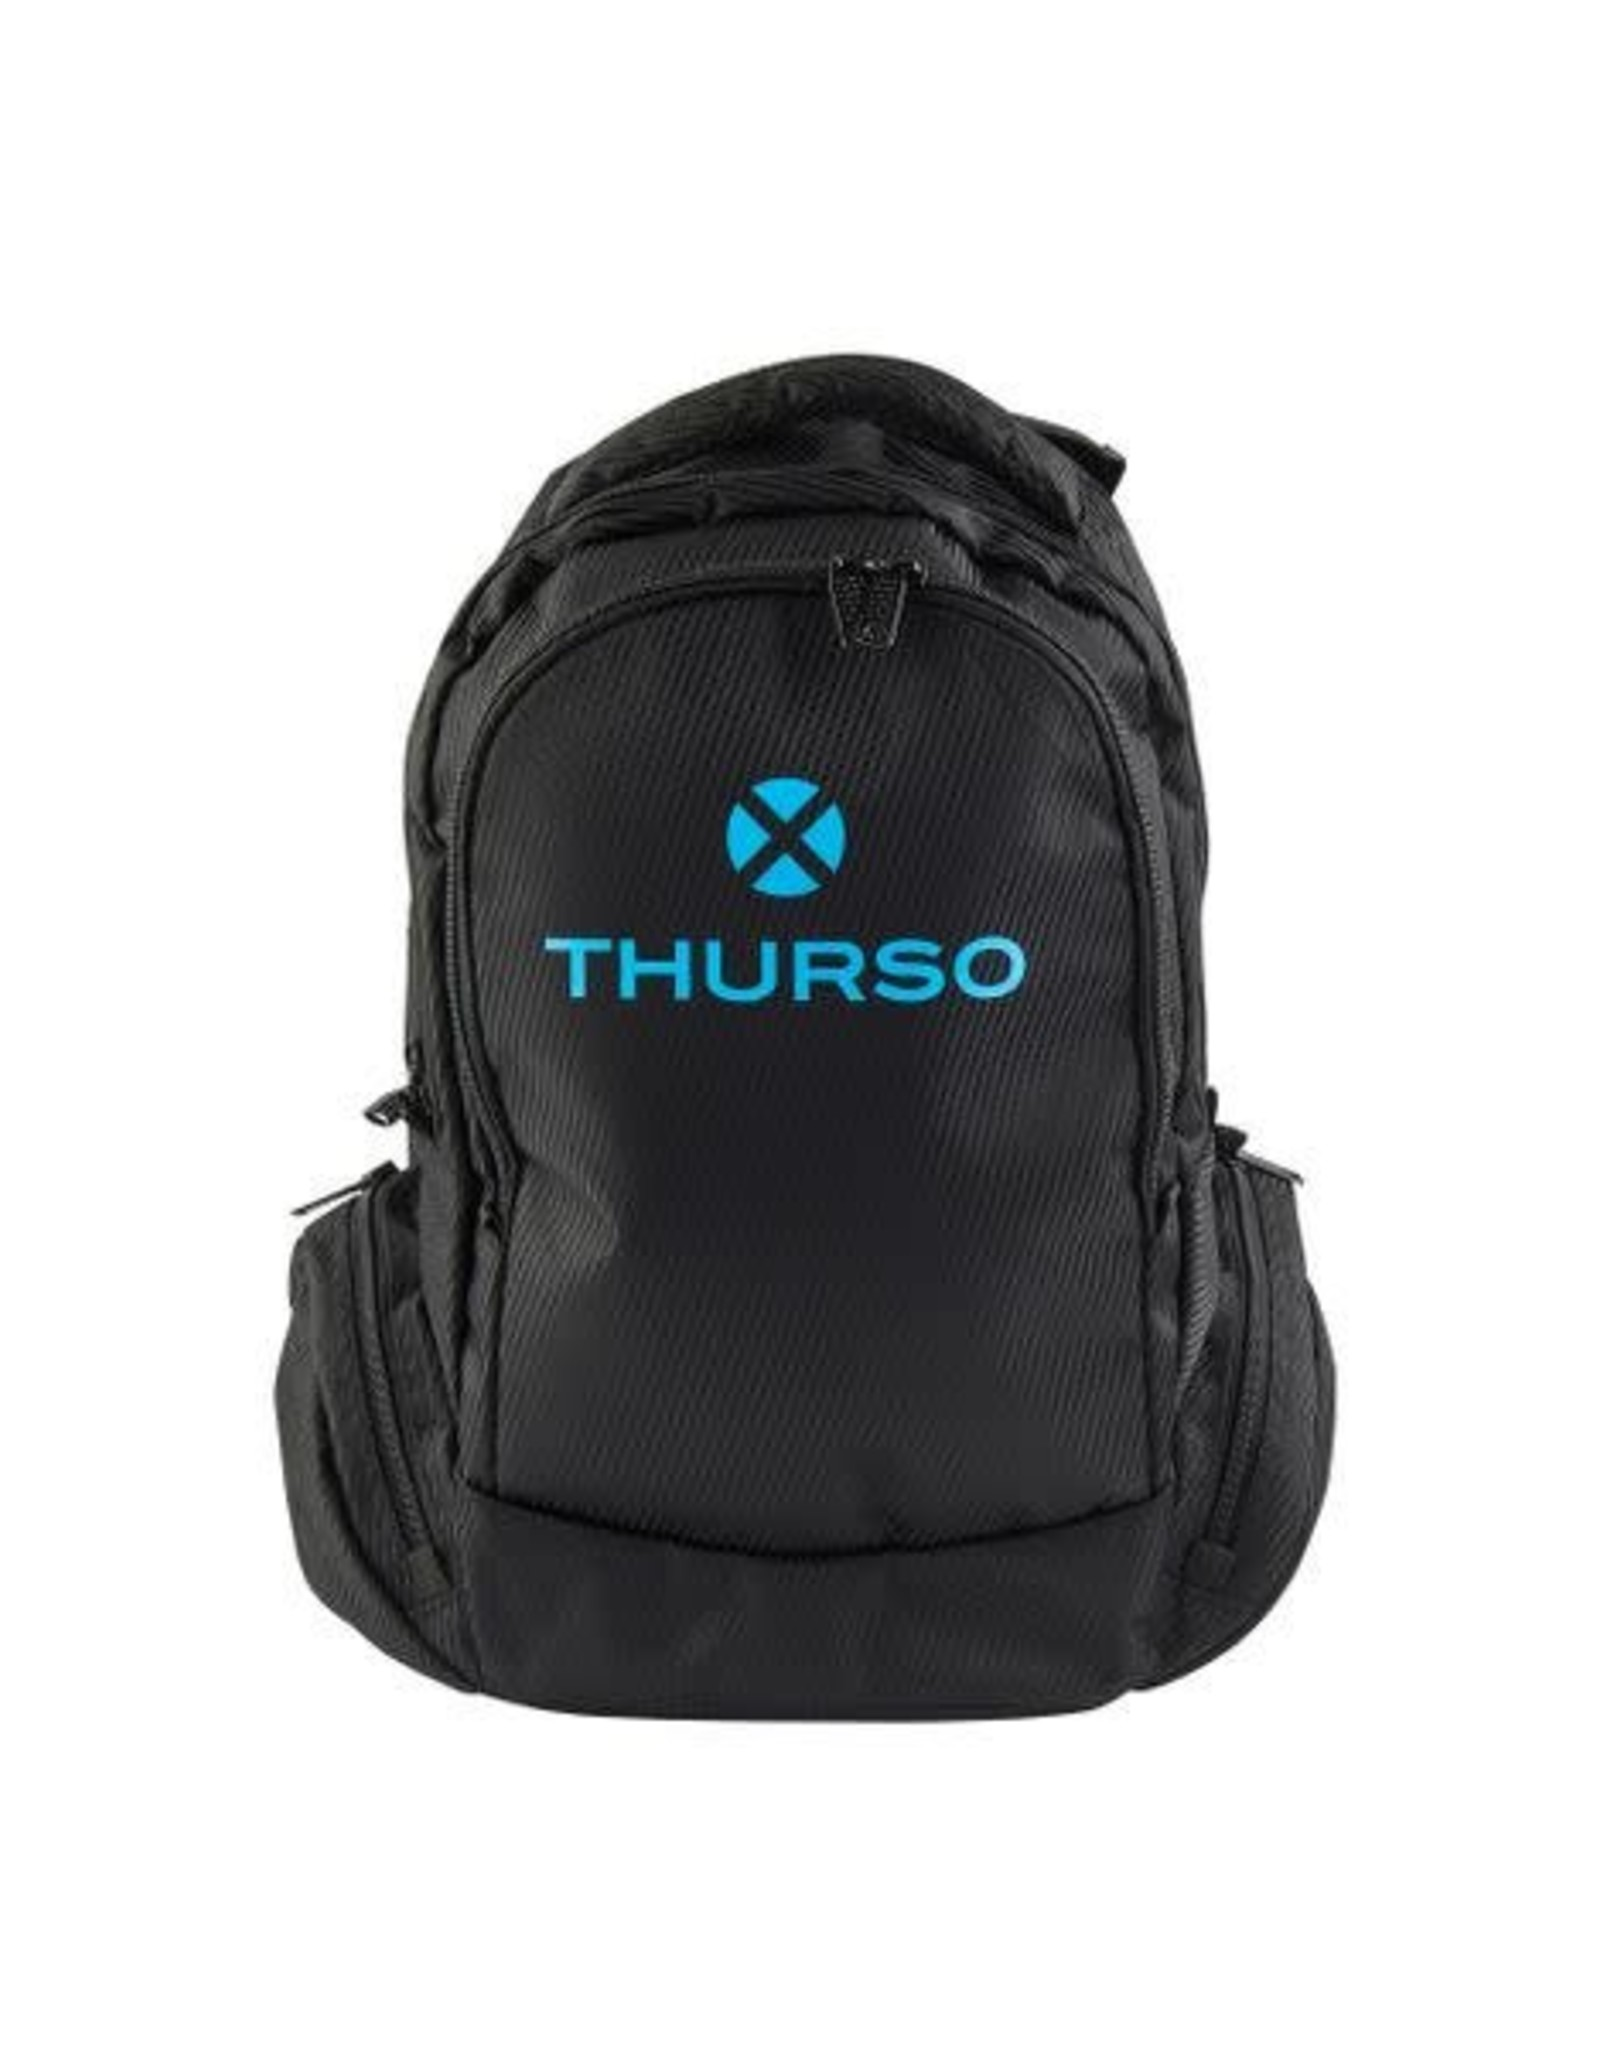 THURSO THURSO BACKPACK SENIOR